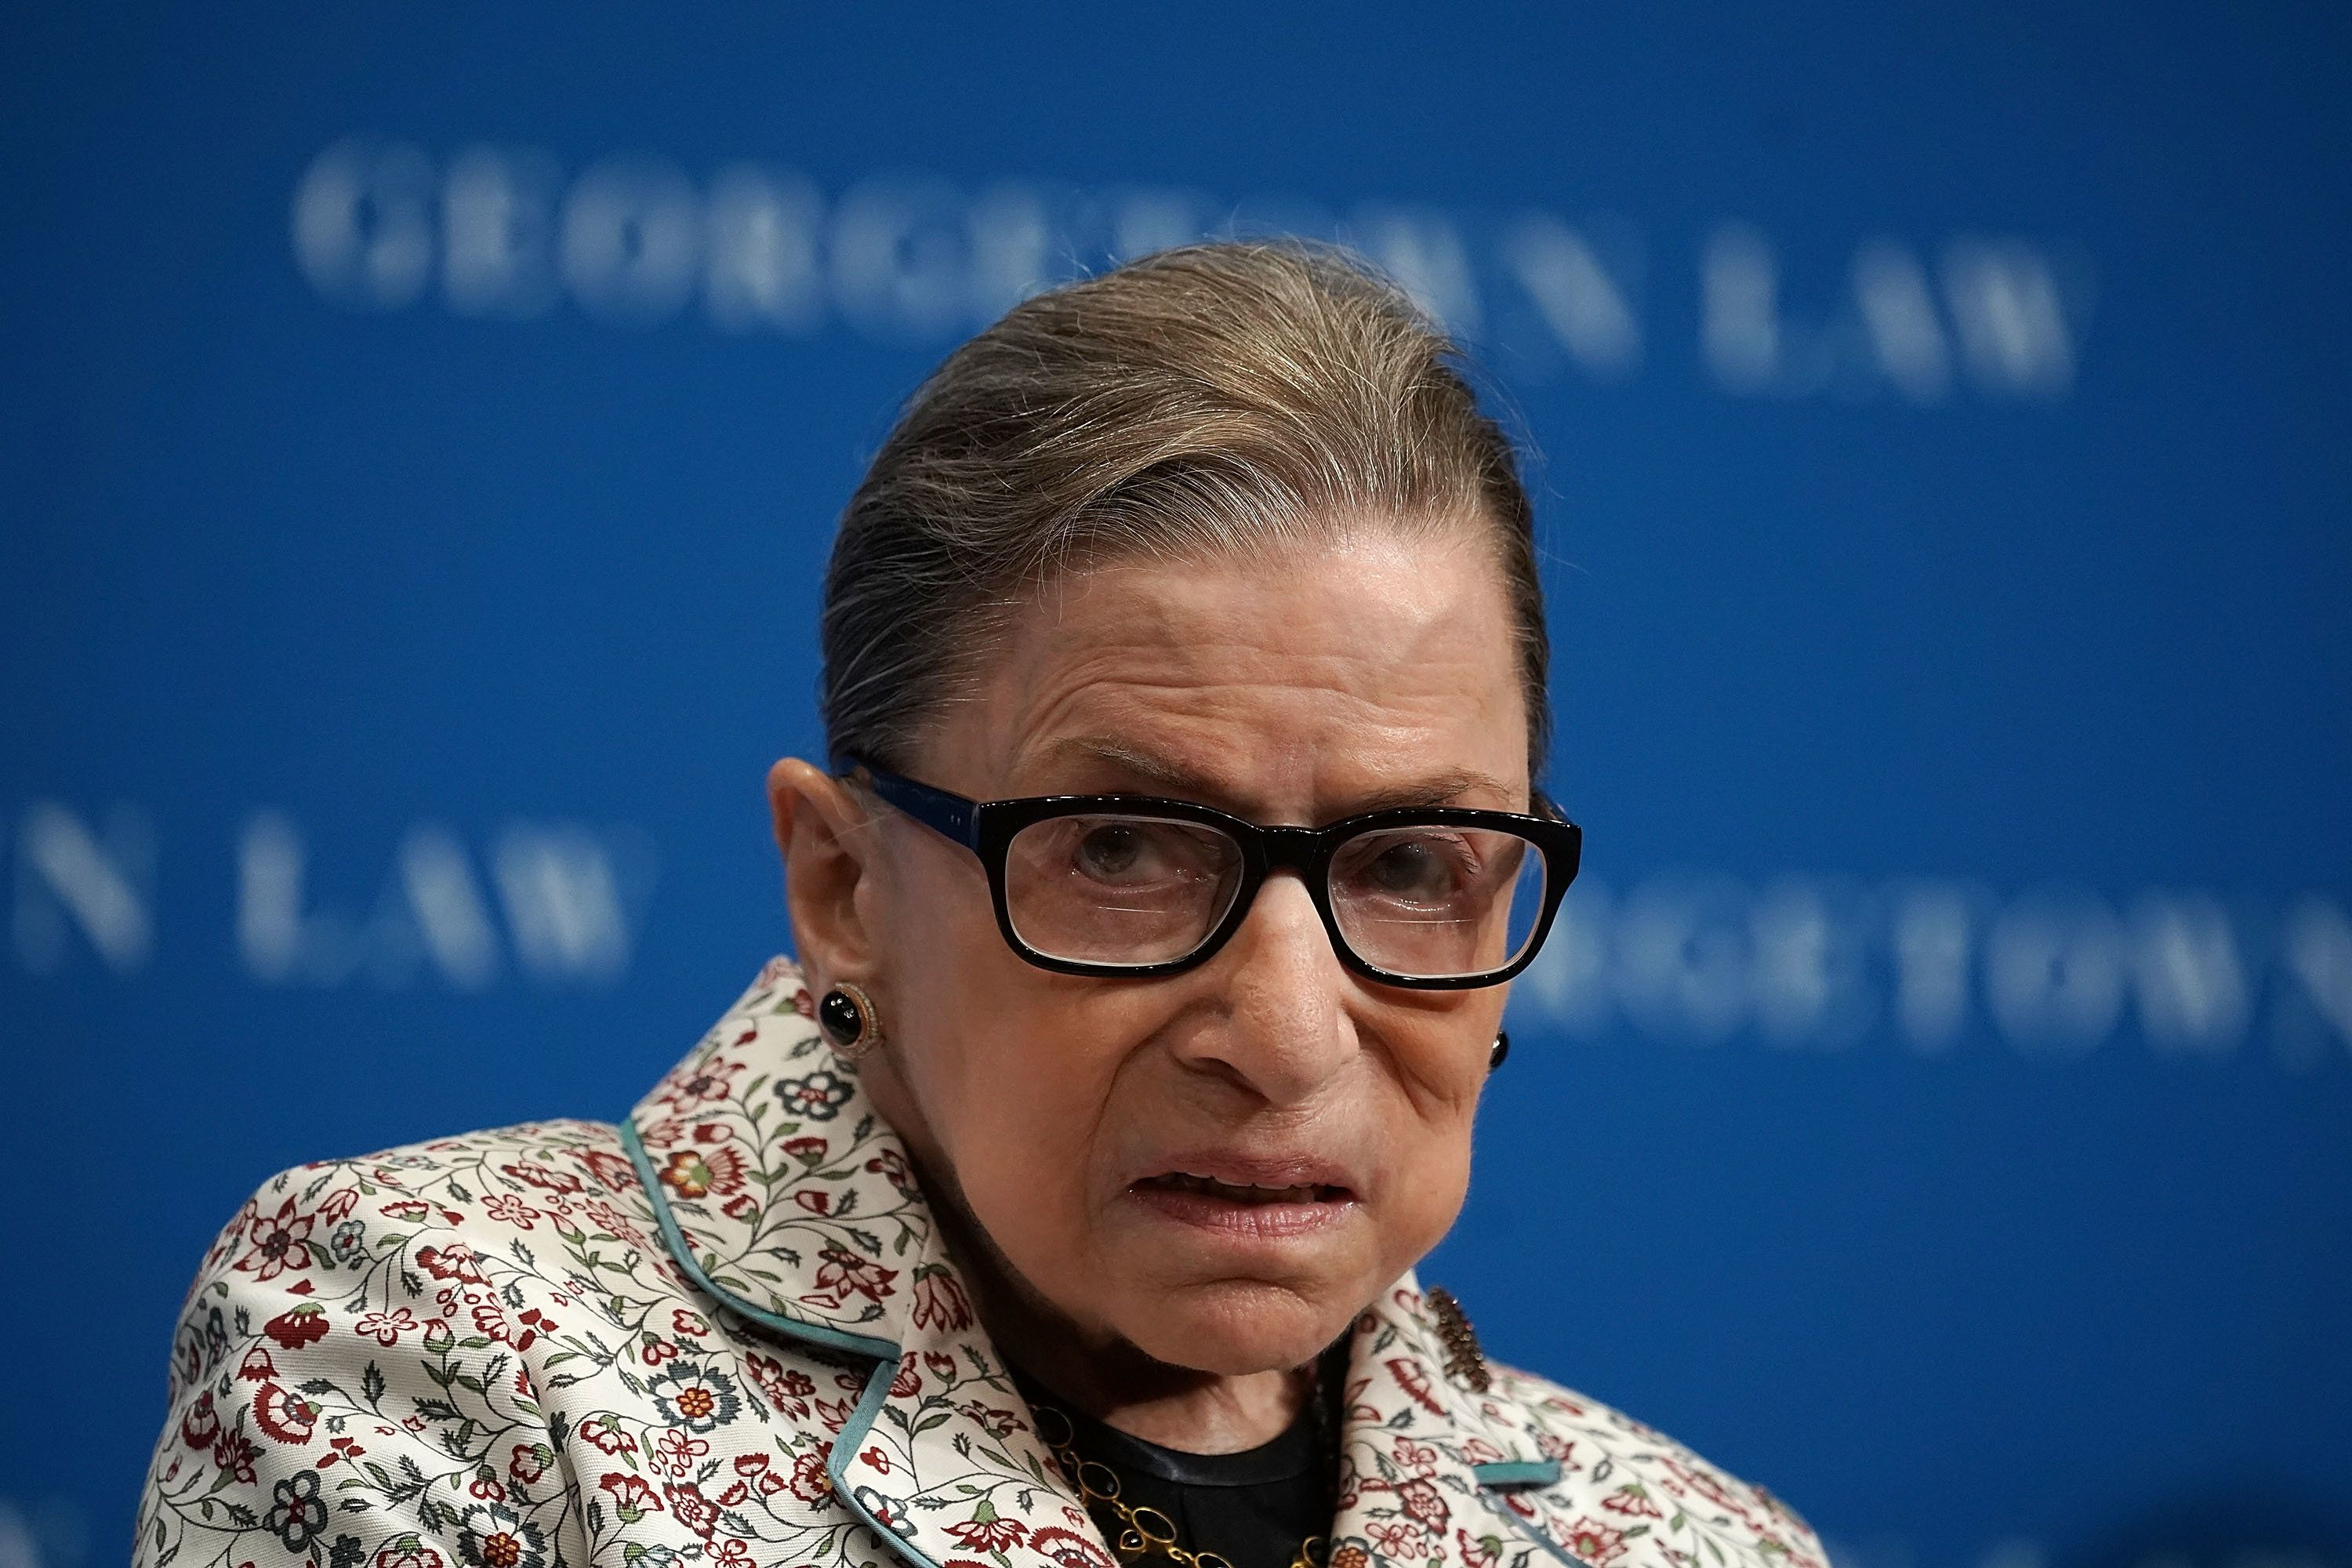 WASHINGTON, DC - SEPTEMBER 26:  U.S. Supreme Court Justice Ruth Bader Ginsburg participates in a lecture September 26, 2018 at Georgetown University Law Center in Washington, DC. Justice Ginsburg discussed Supreme Court cases from the 2017-2018 term at the lecture.  (Photo by Alex Wong/Getty Images)